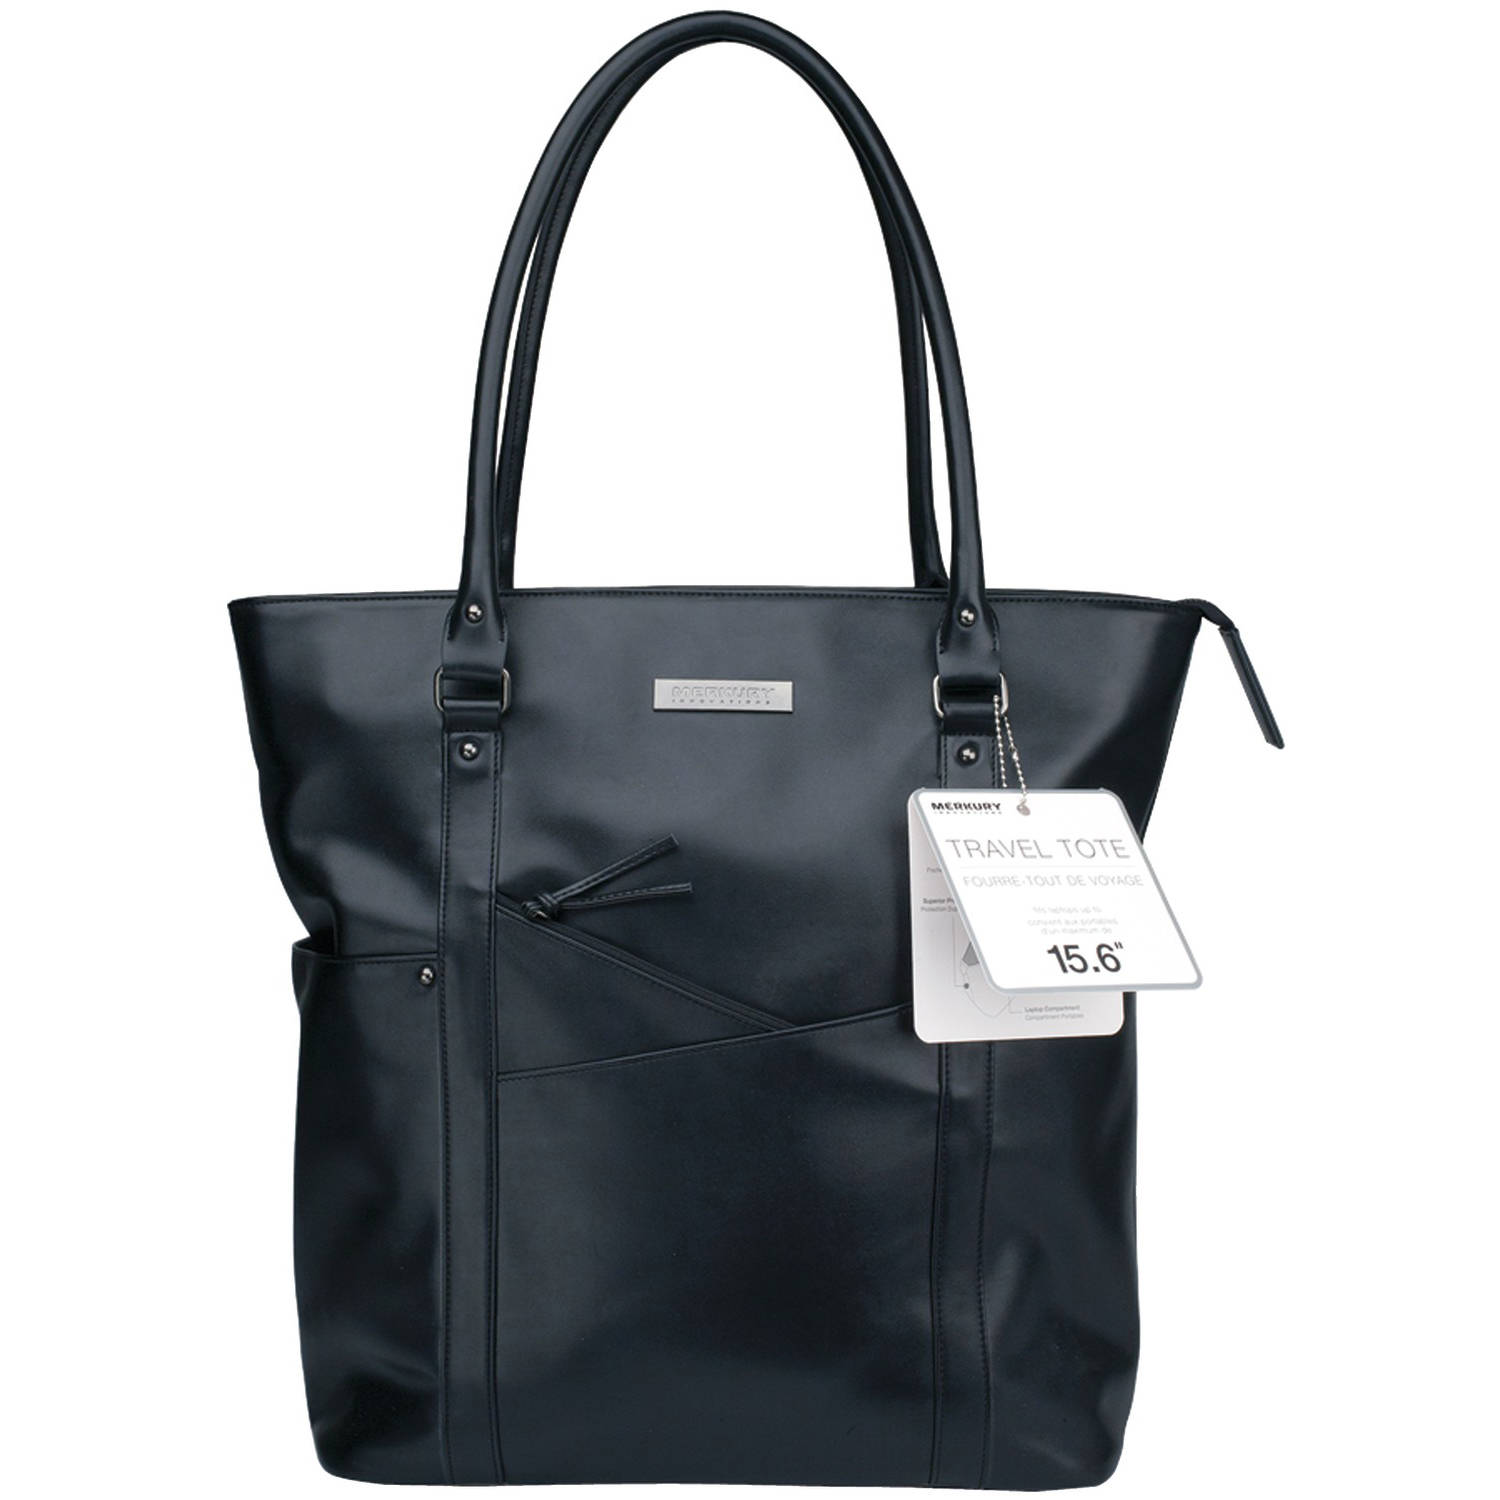 "Merkury Innovations MI-L1512-101 15.6"" Travel Tote"